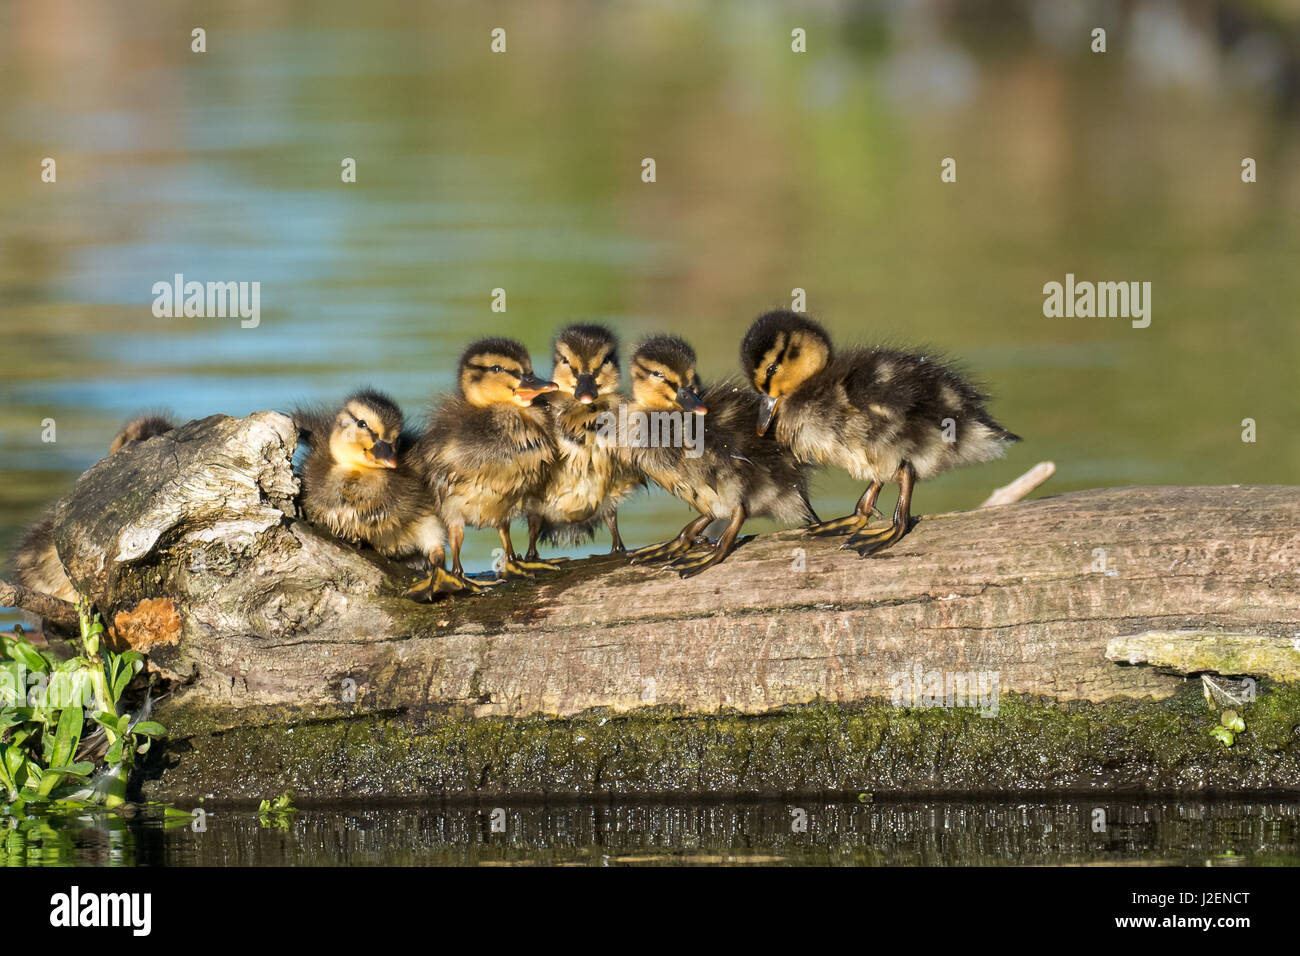 Ducklings In A Line Stock Photos & Ducklings In A Line Stock Images ...